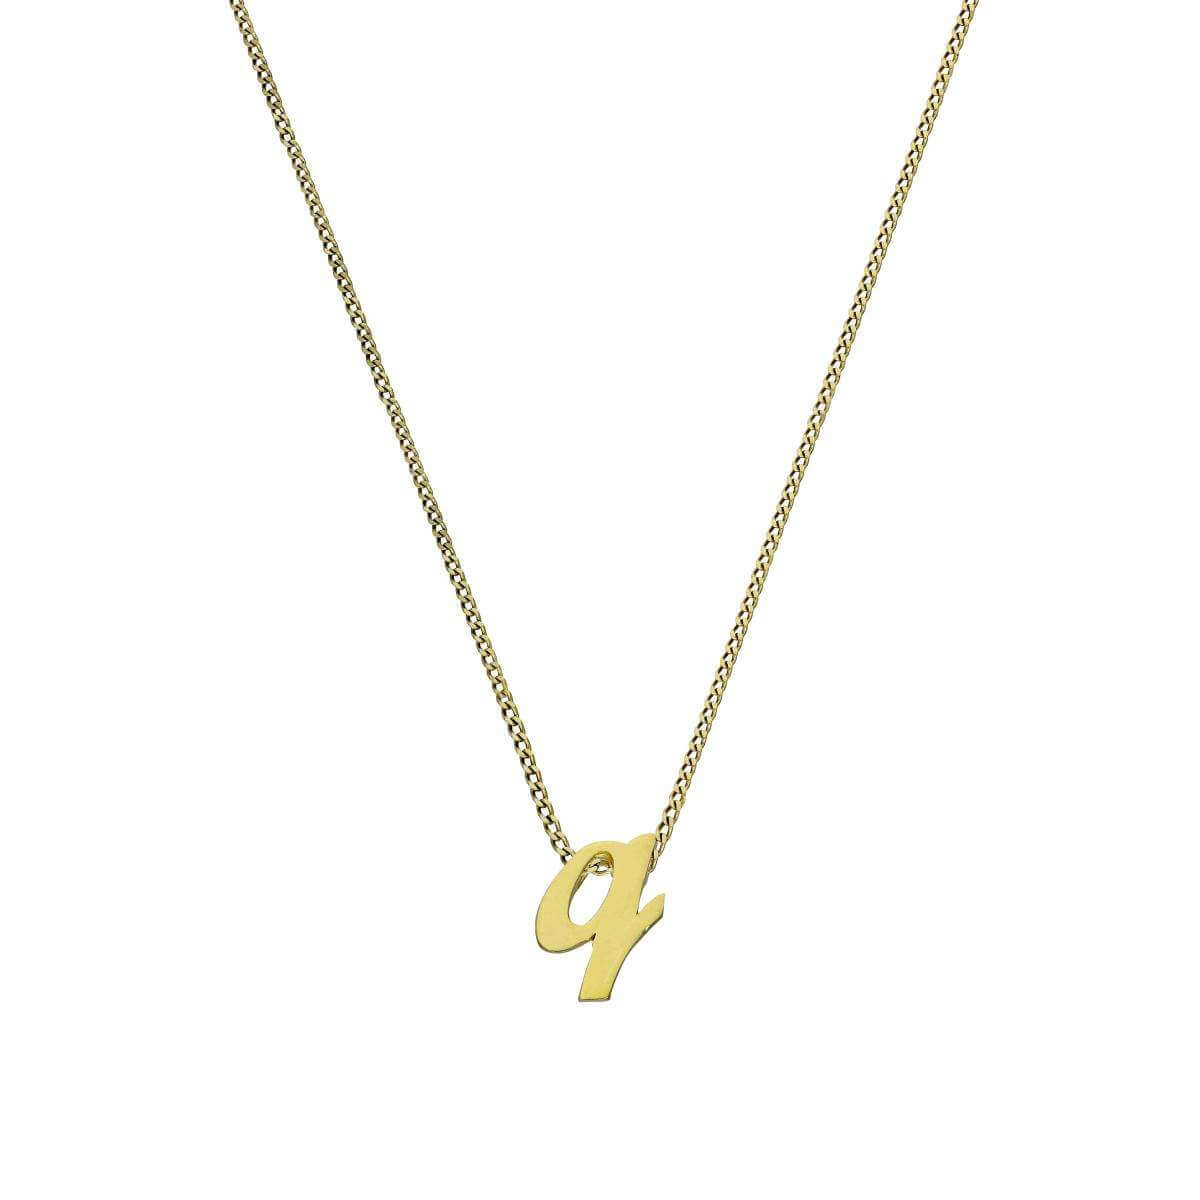 Tiny 9ct Gold Alphabet Letter Q Pendant Necklace 16 - 20 Inches